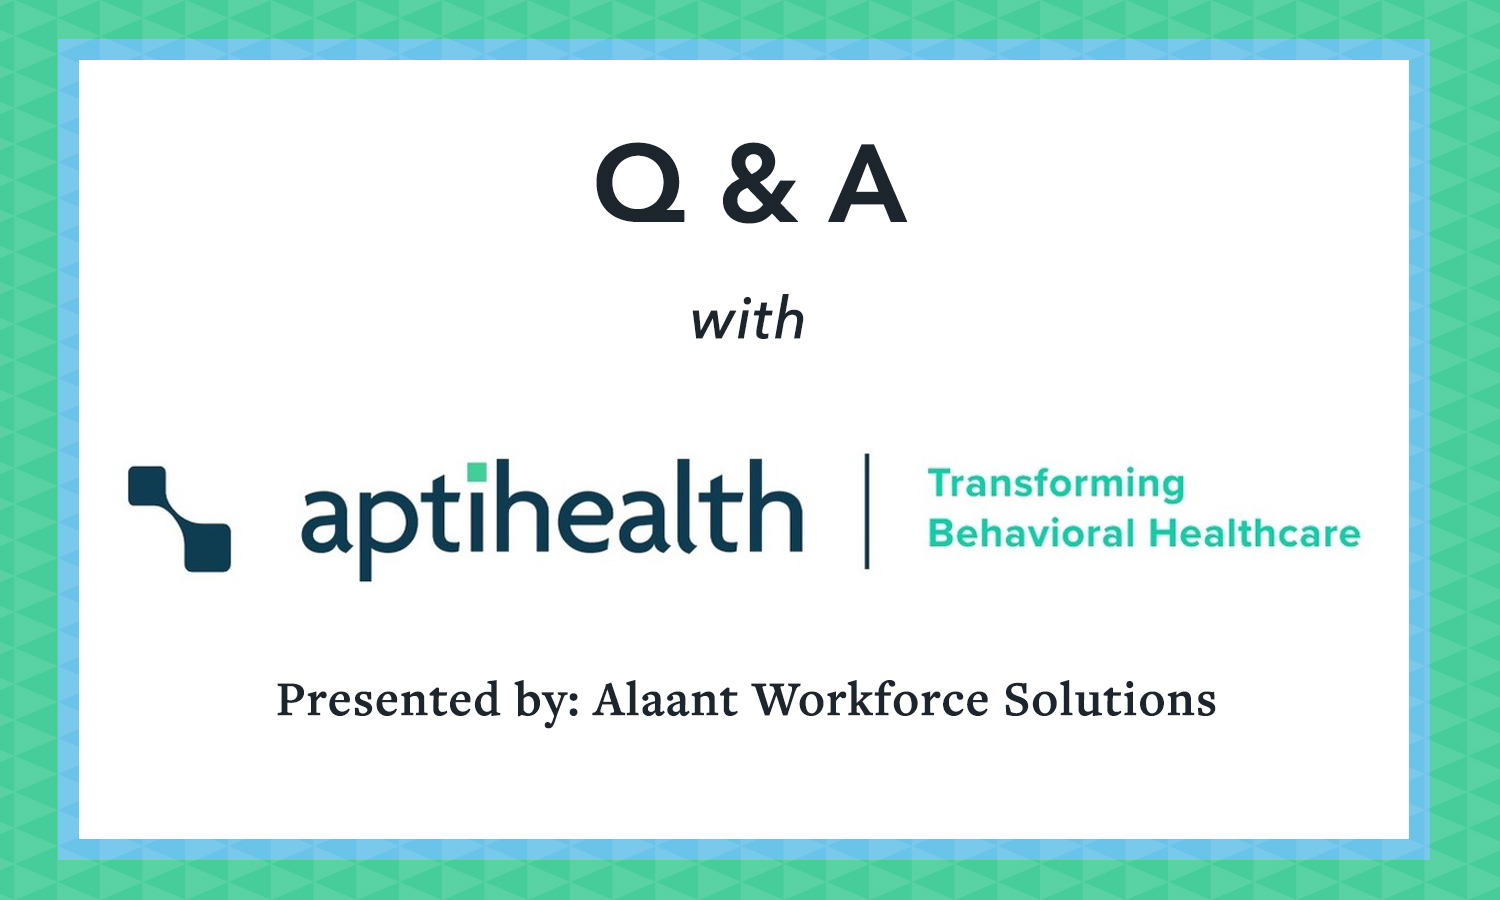 aptihealth Q&A Presented by Alaant Workforce Solutions